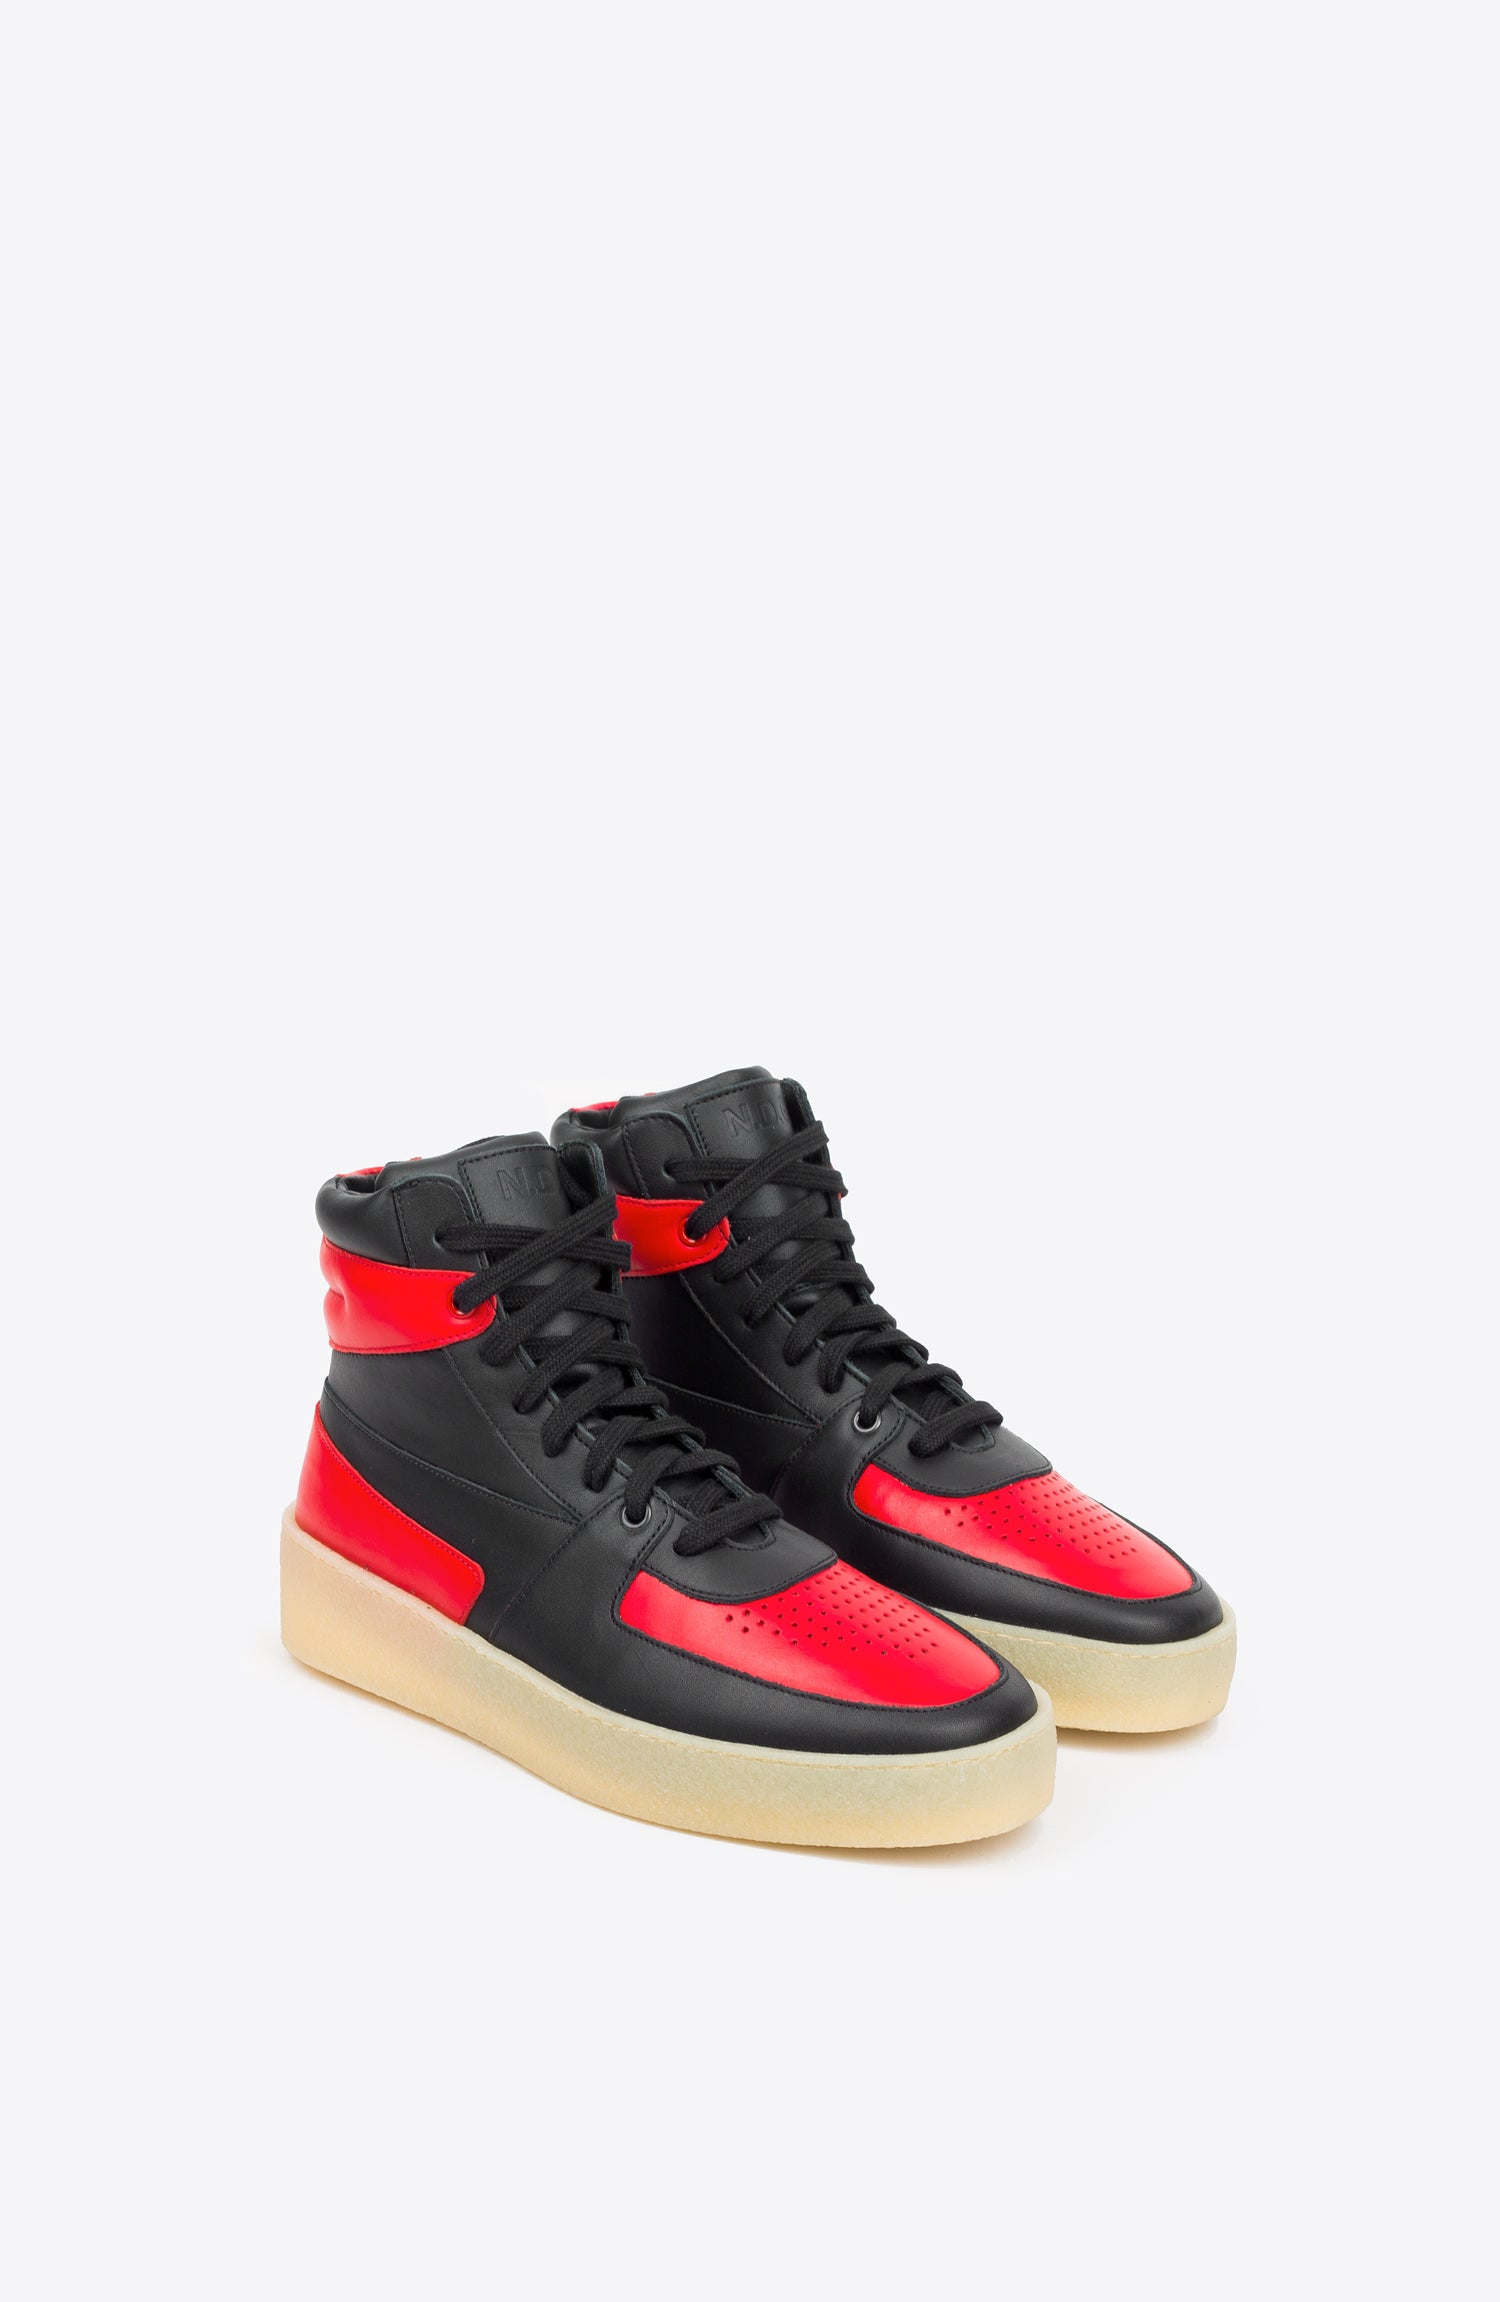 GUM SOLE HOME RED 1984 SNEAKER